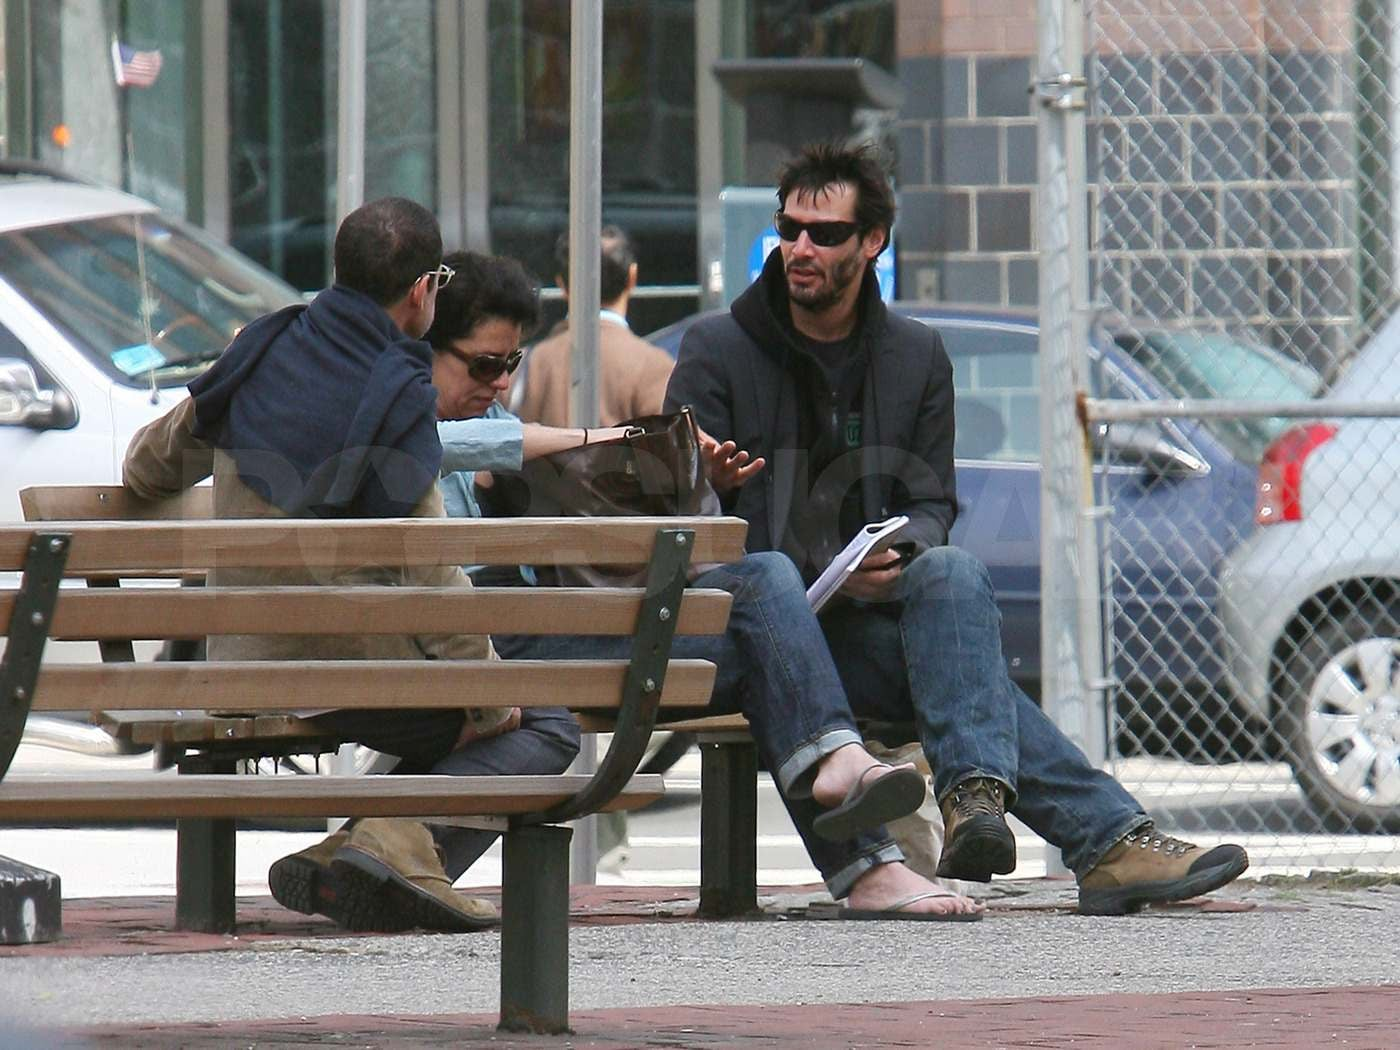 Keanu is everyone keanu reeves pictures - Share This Link Copy To See More Of Keanu